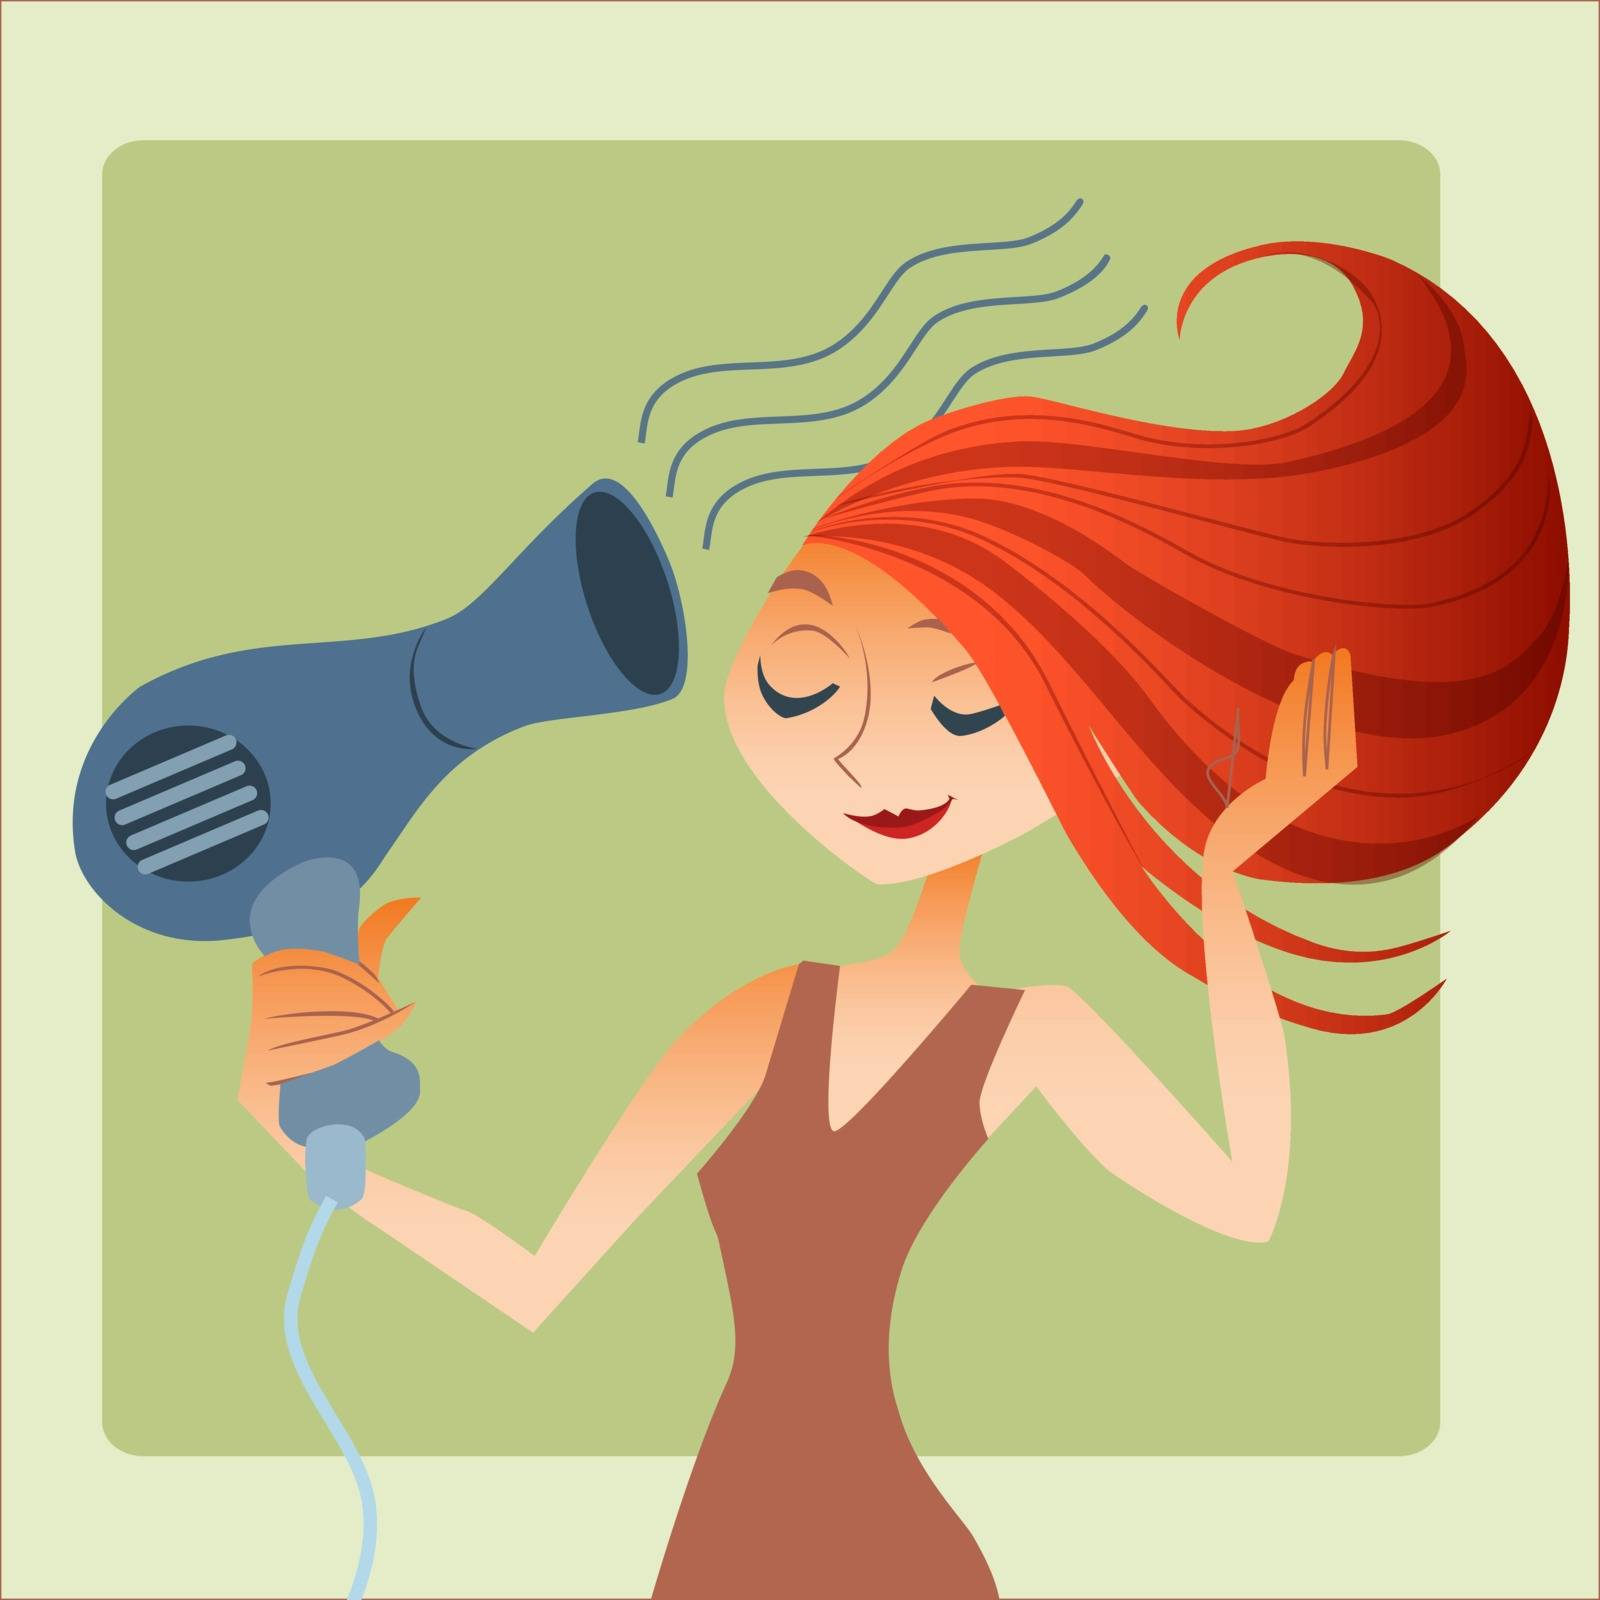 Young woman drying hair. Morning gathering for a date or a job